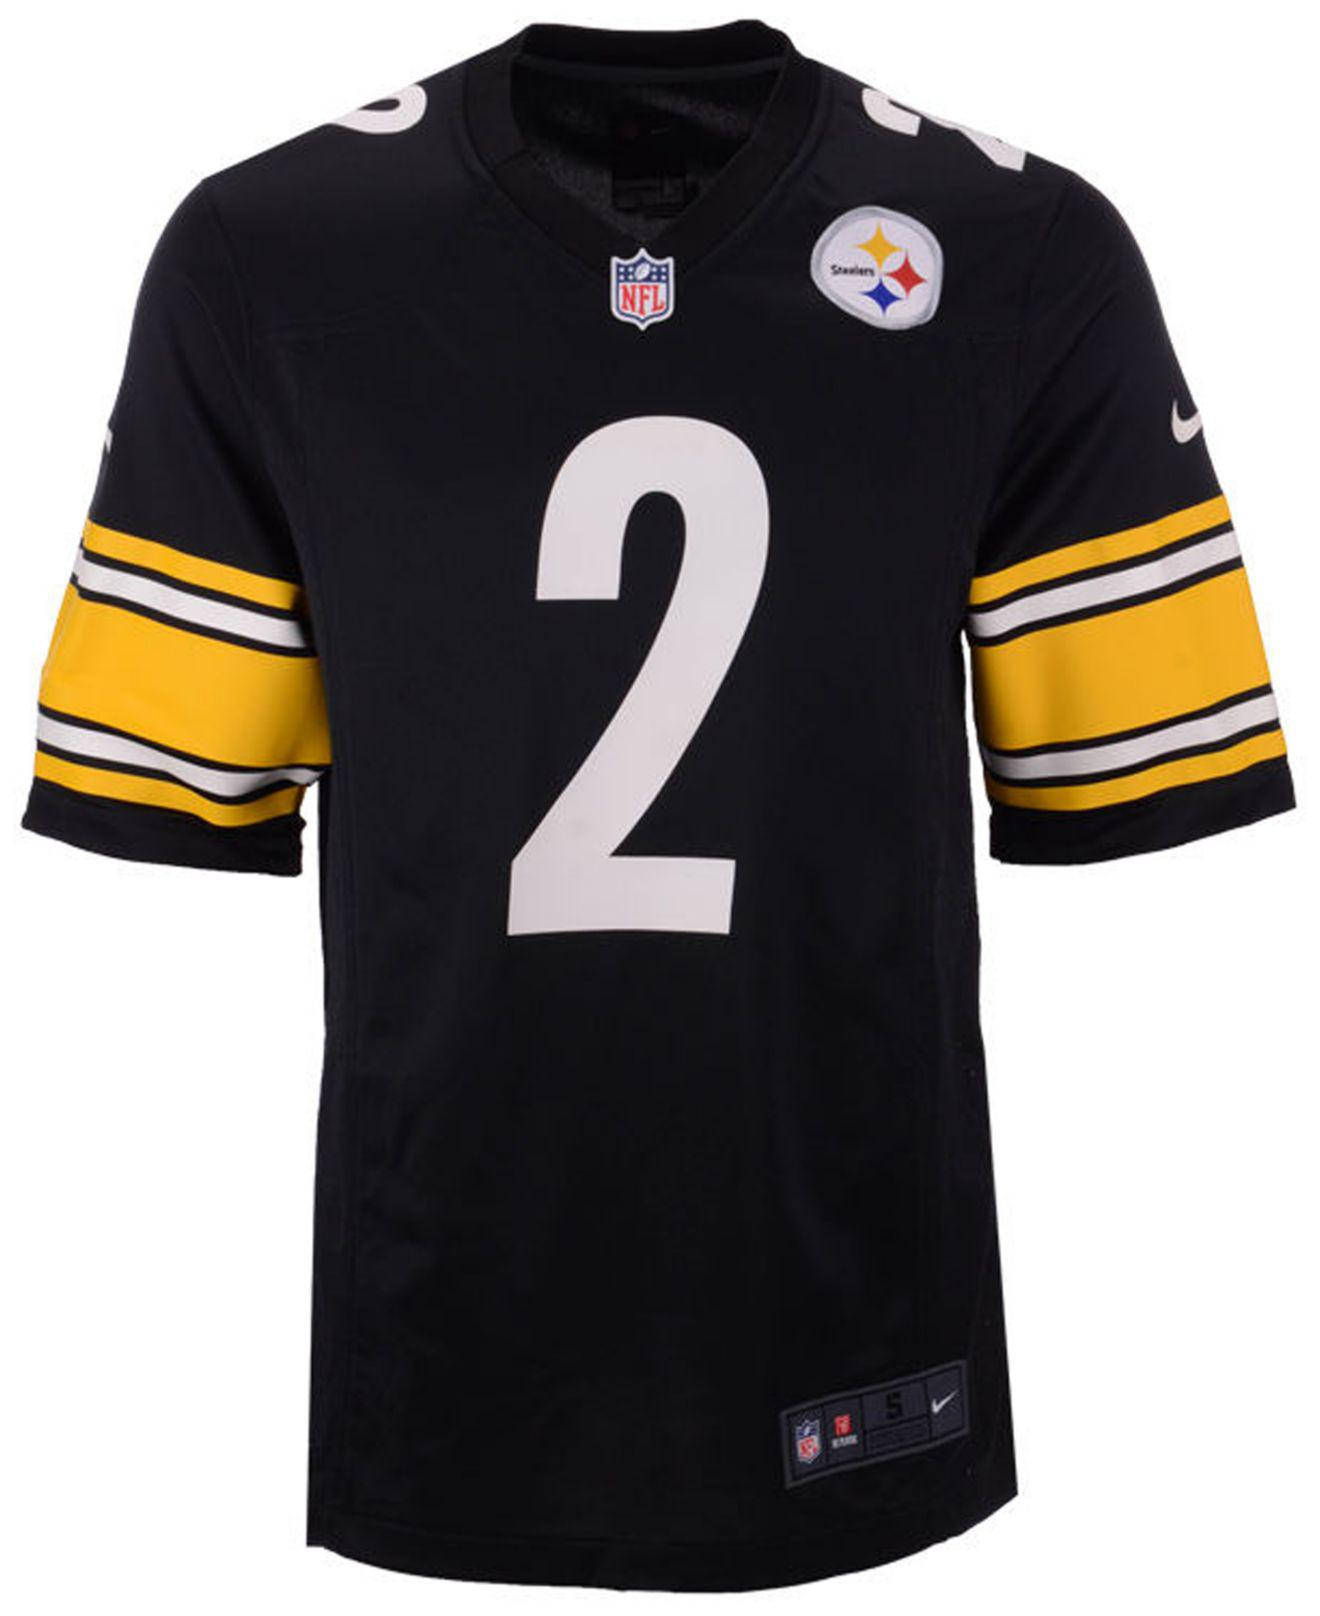 Lyst - Nike Mason Rudolph Pittsburgh Steelers Game Jersey in Black for Men 58866ce99